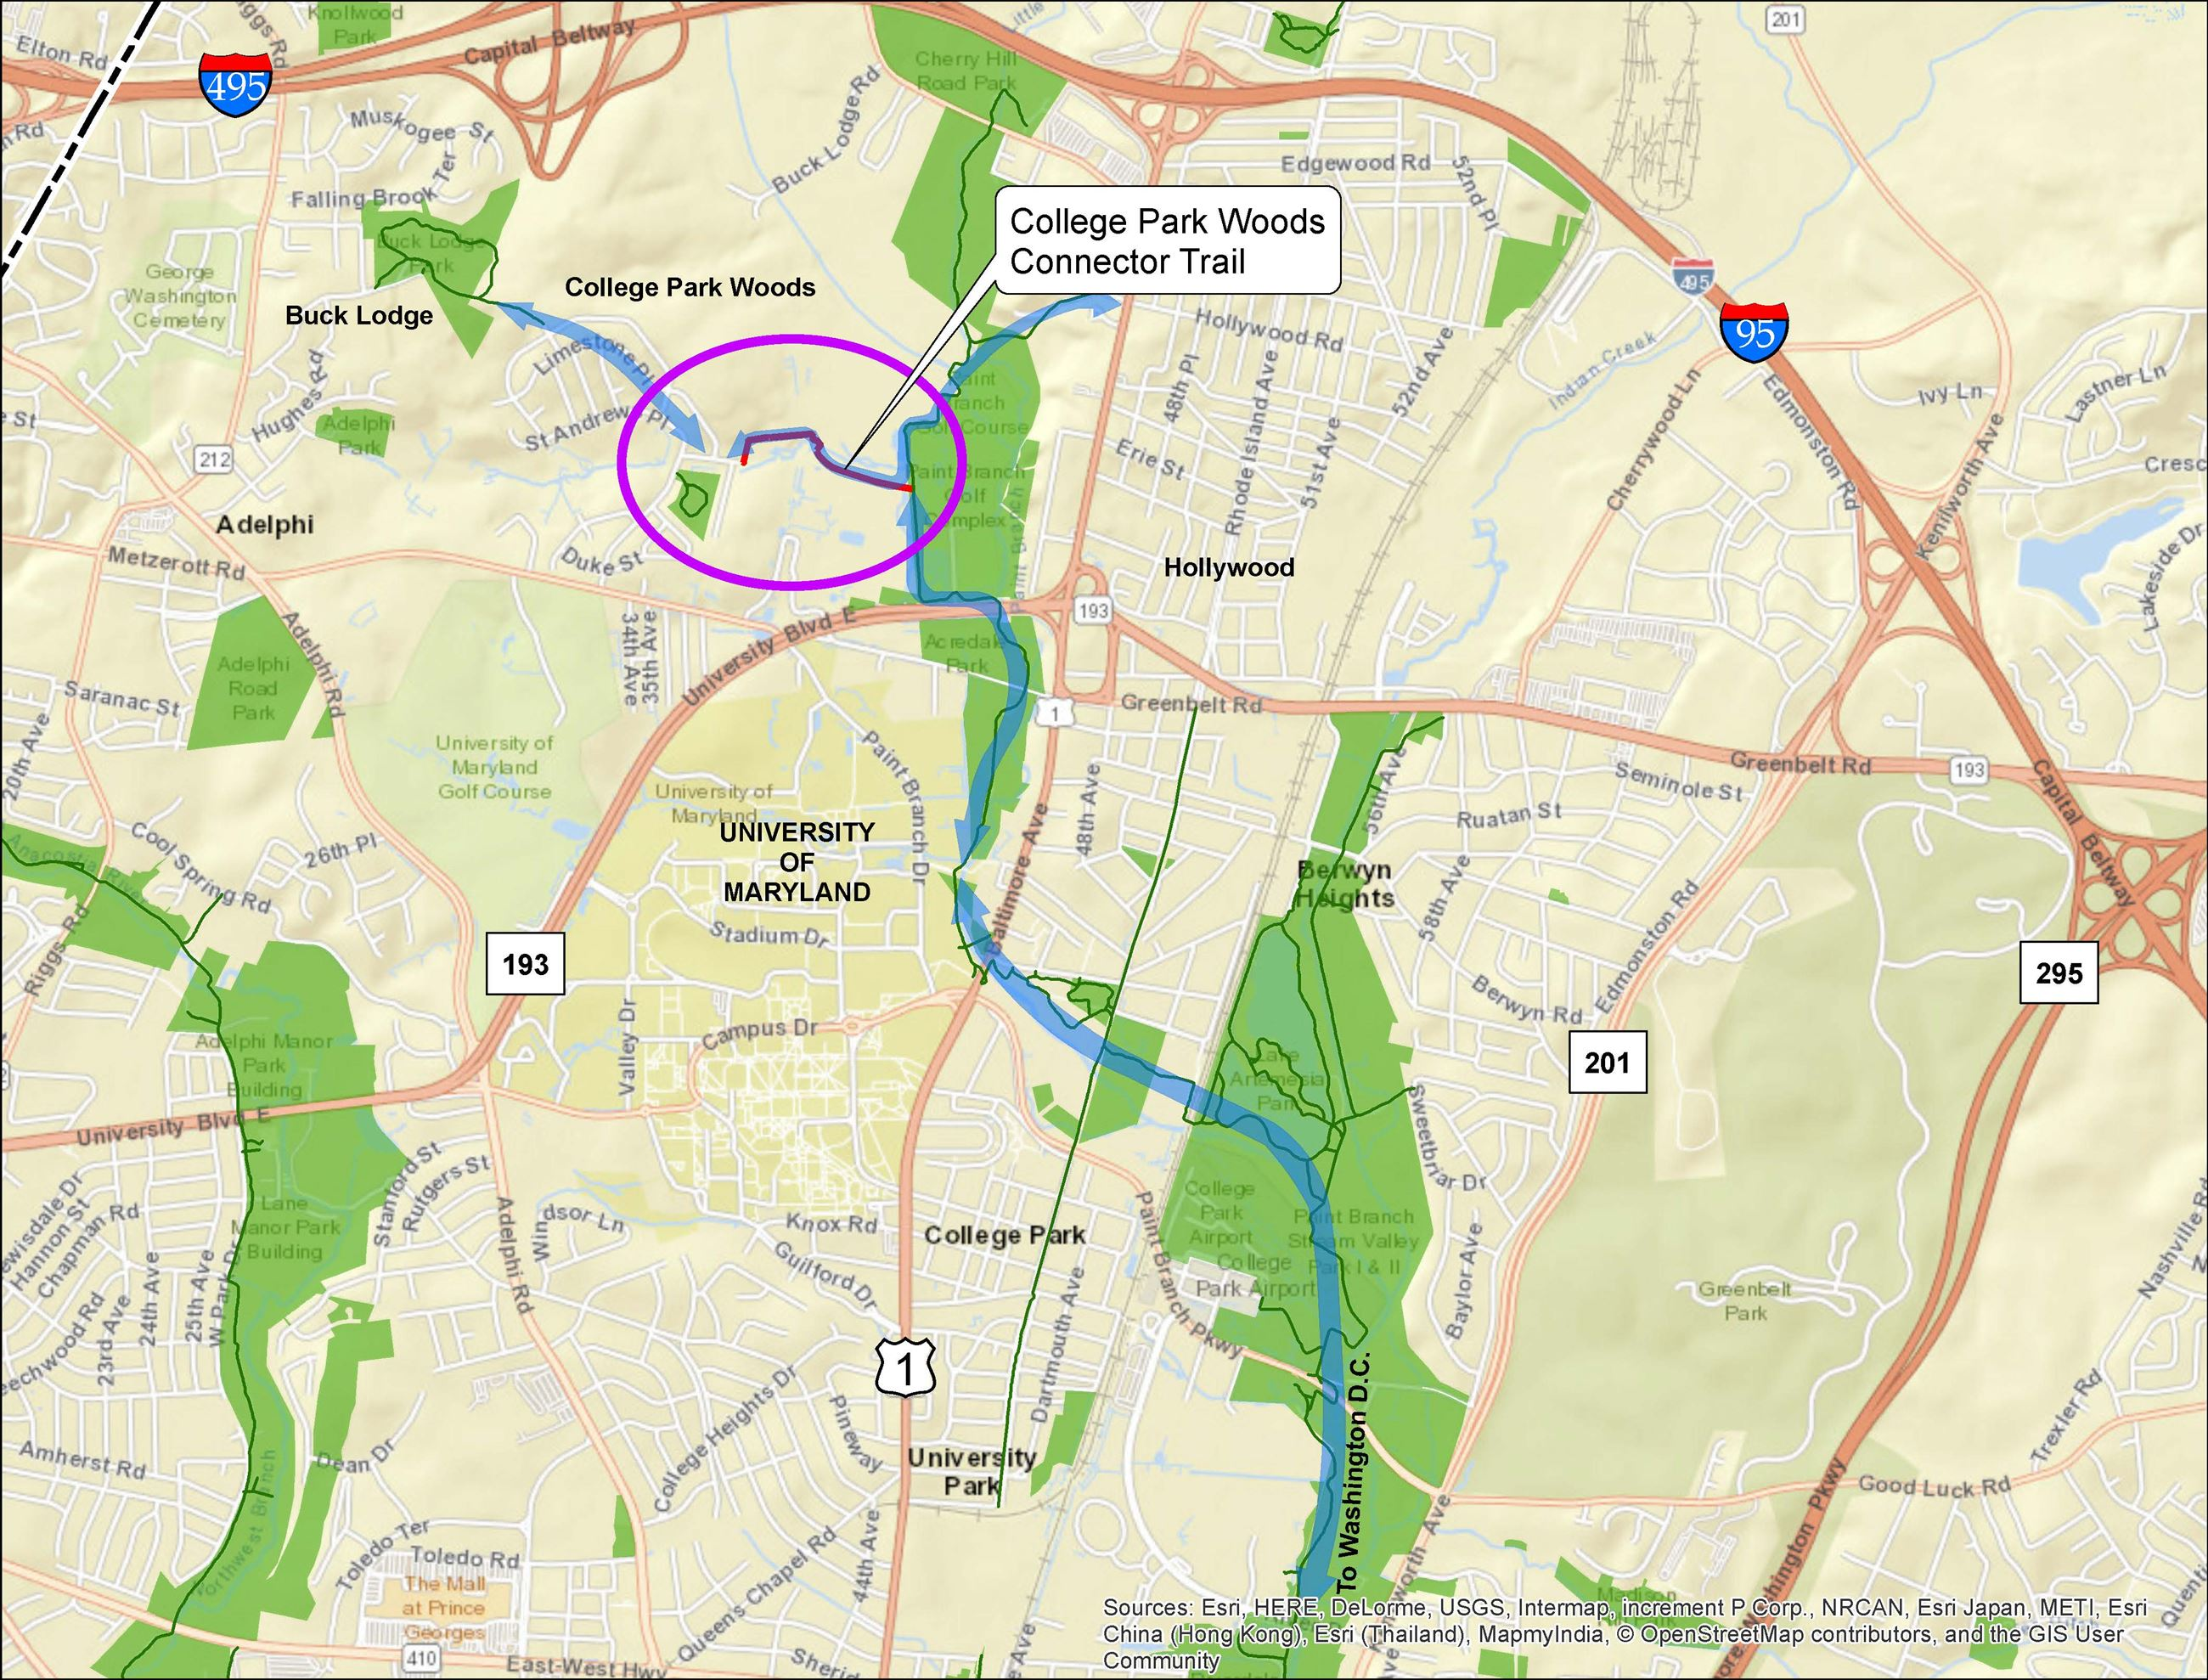 A map image depicting the College Park Connector Trail vicinity north of College Park, MD.